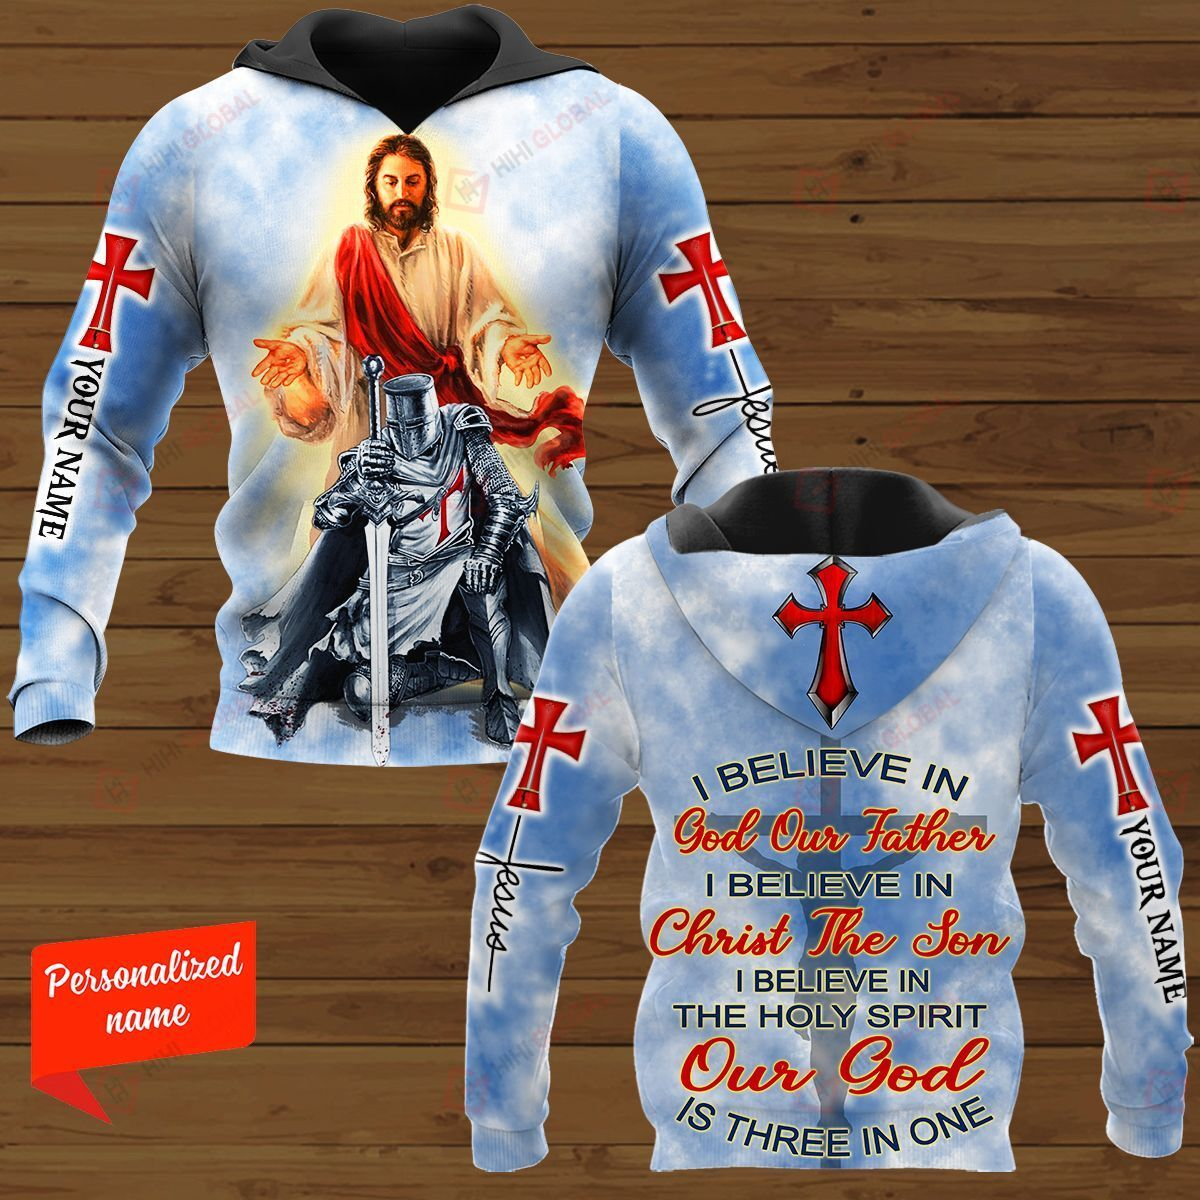 I Believe In God Our Father I Believe In Christ The Son I Believe In The Holy Spirit Out God Is Three In One Personalized ALL OVER PRINTED SHIRTS